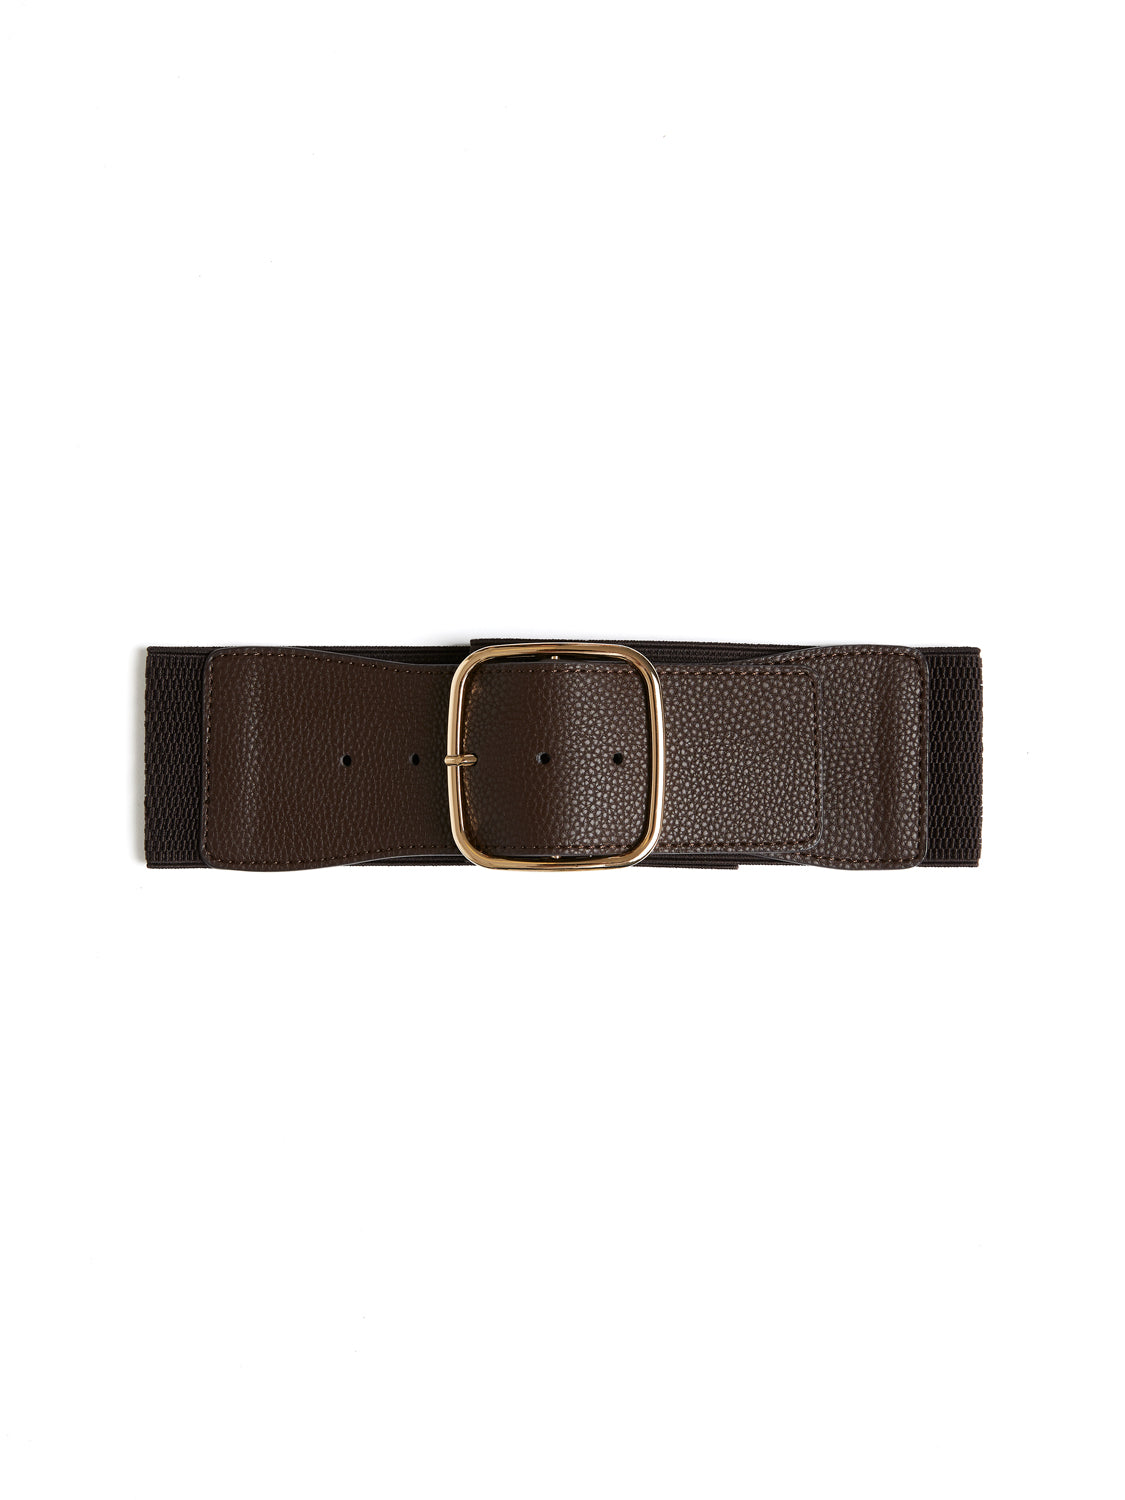 Round Square Buckle Belt